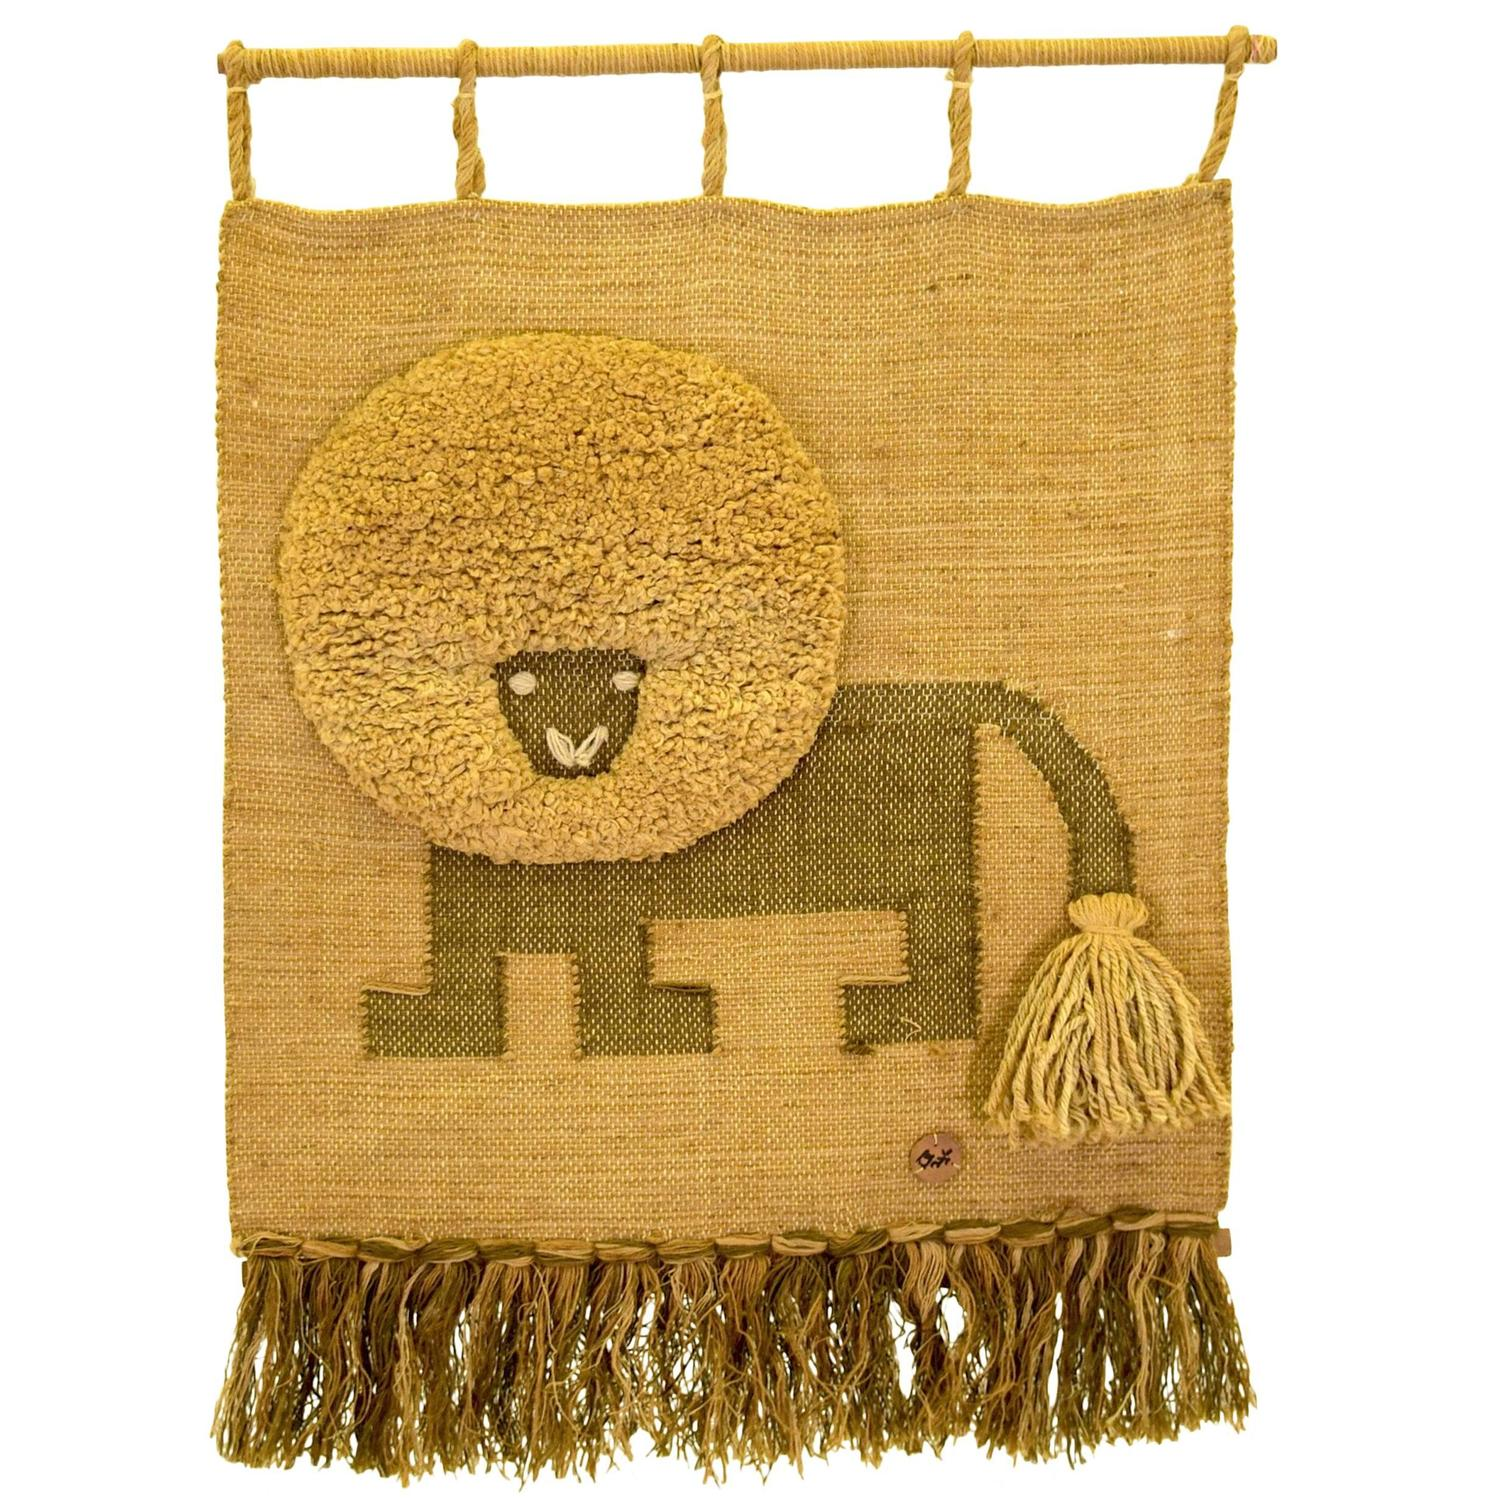 Large Lion Textile Art by Don Freedman for Interlude at 1stdibs